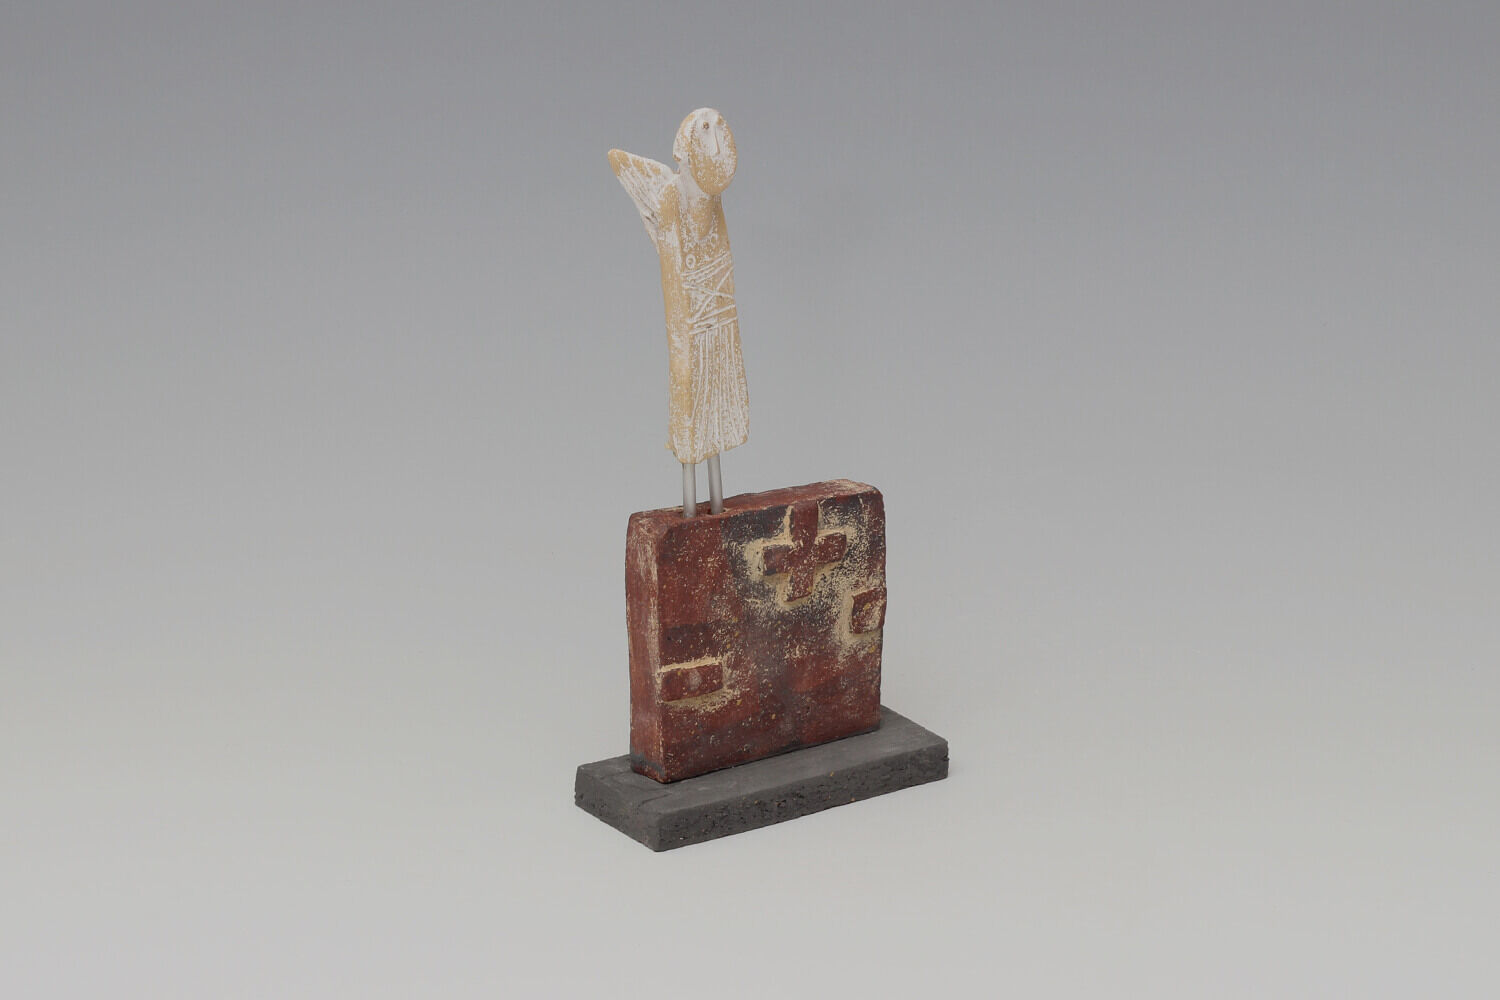 John Maltby Ceramic Sculpture of an Angel on a Wall 033